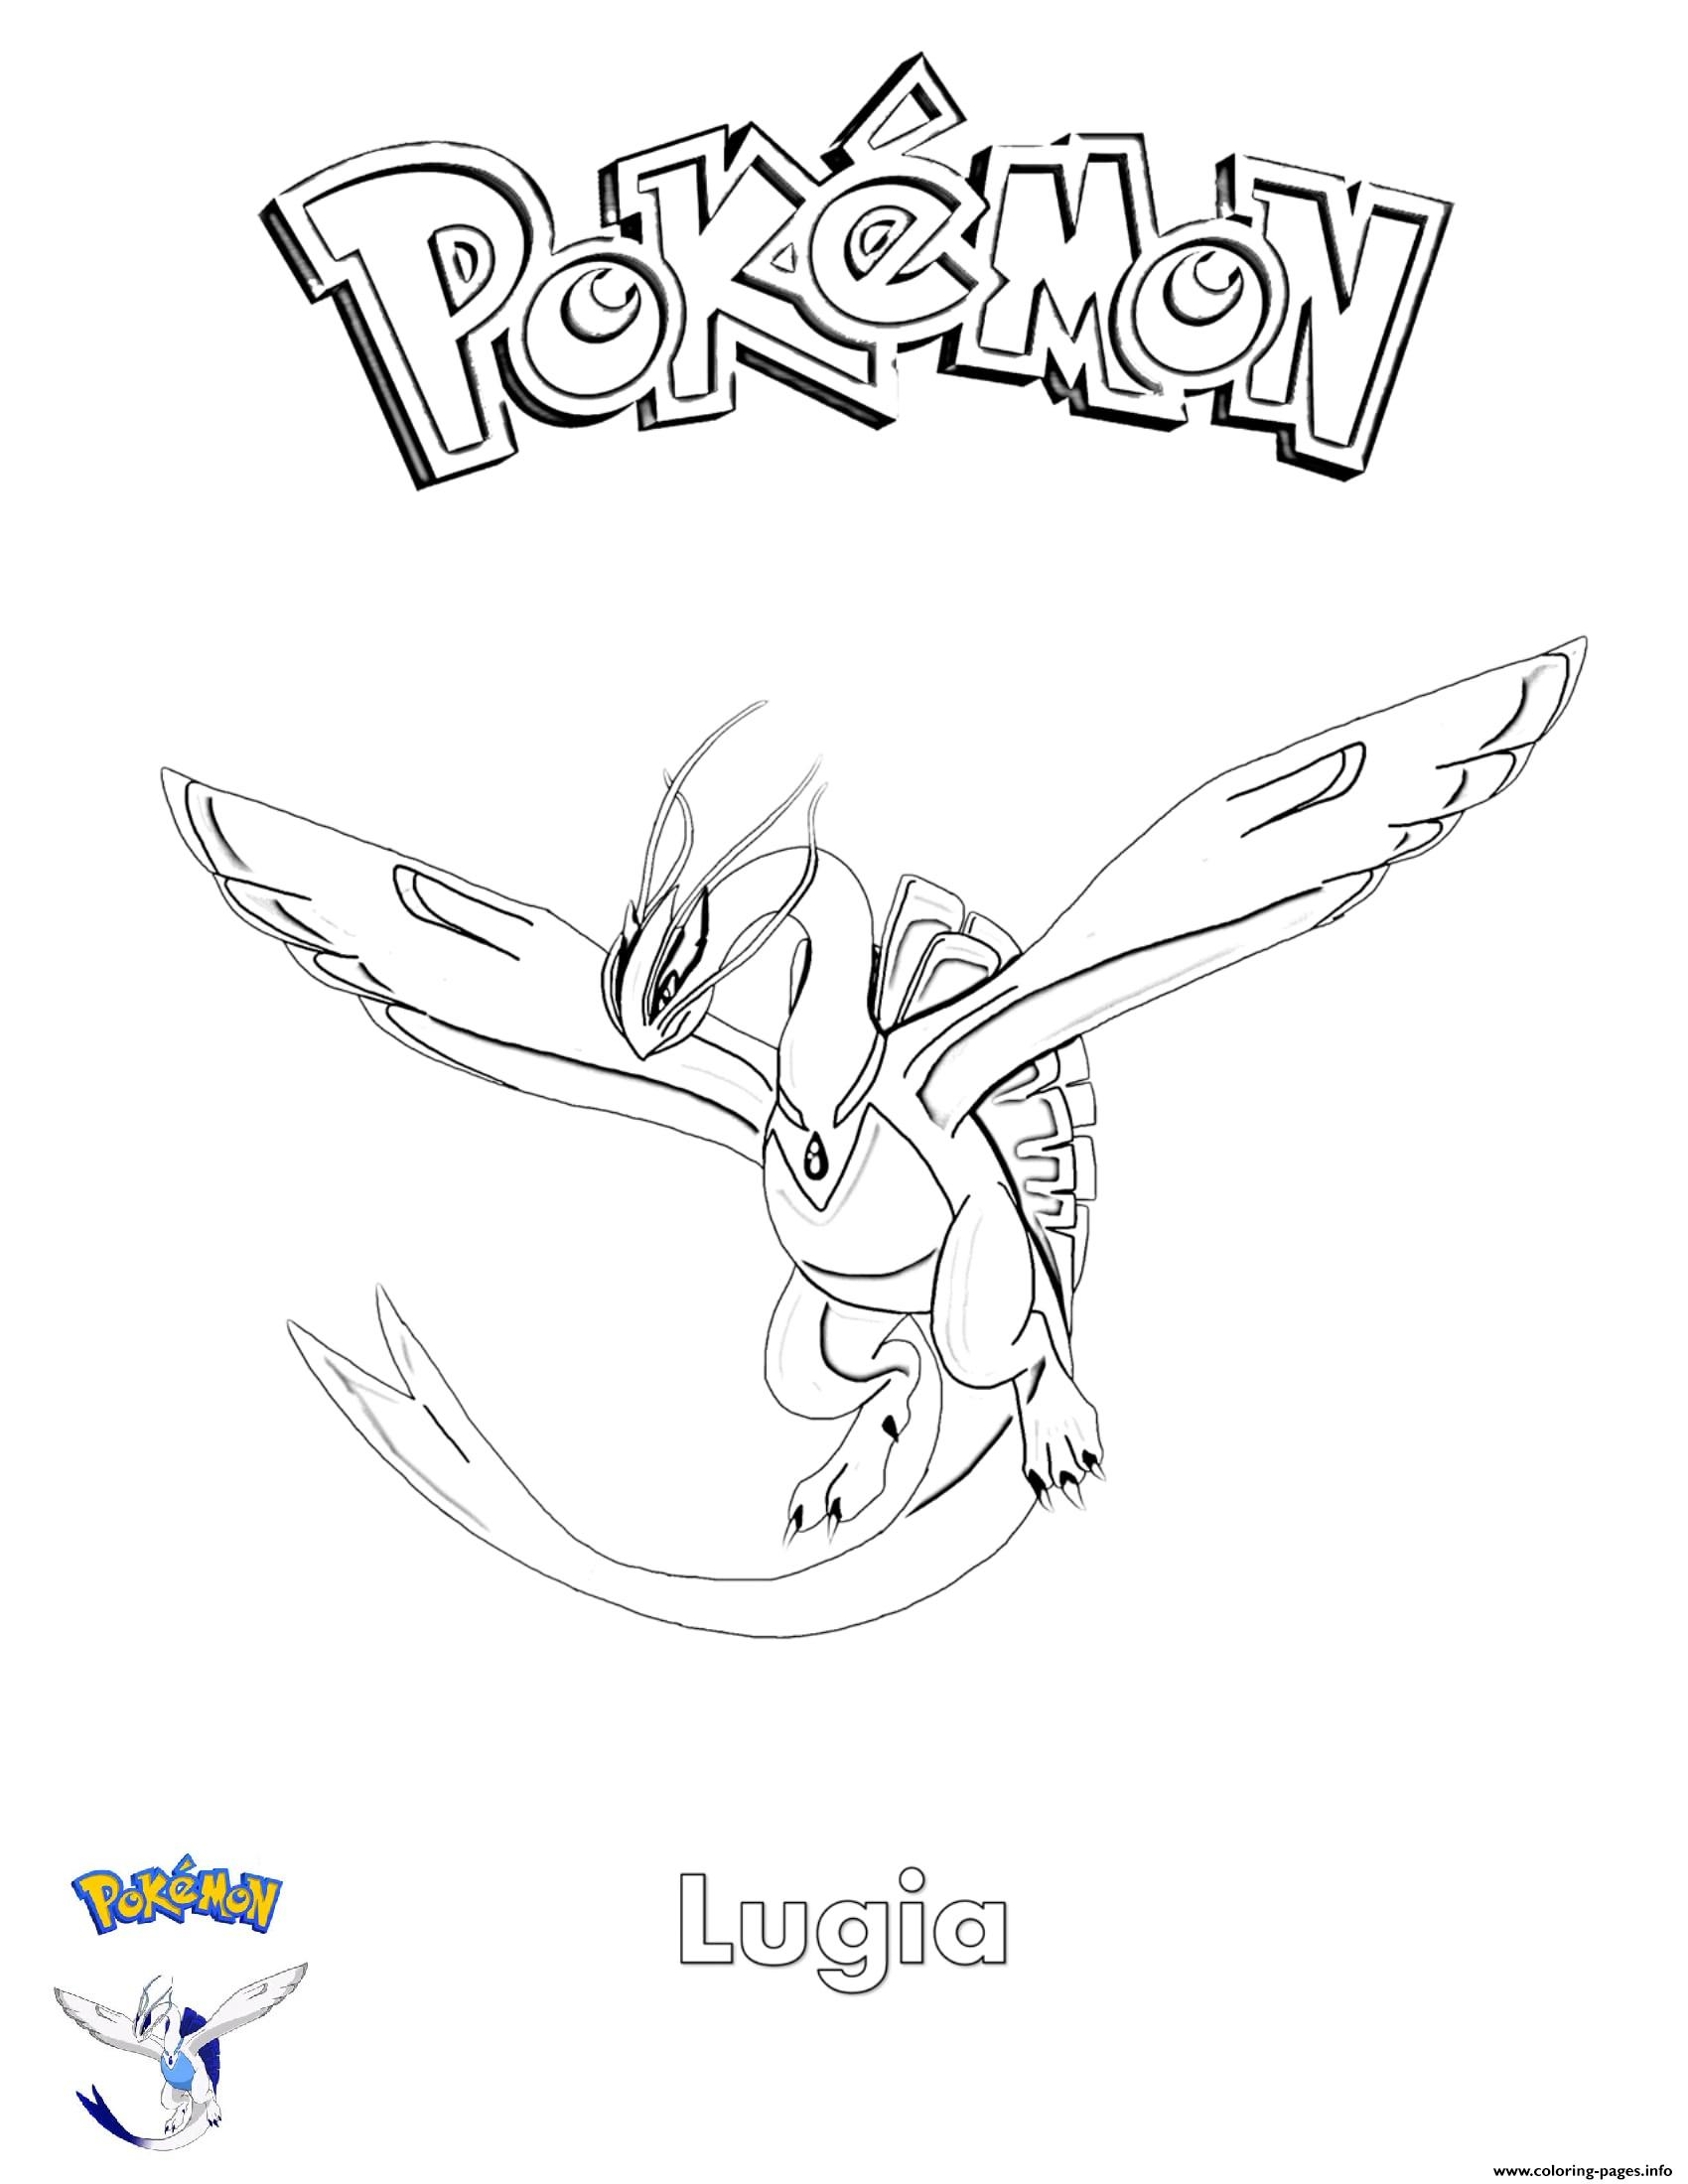 Lugia Pokemon coloring pages